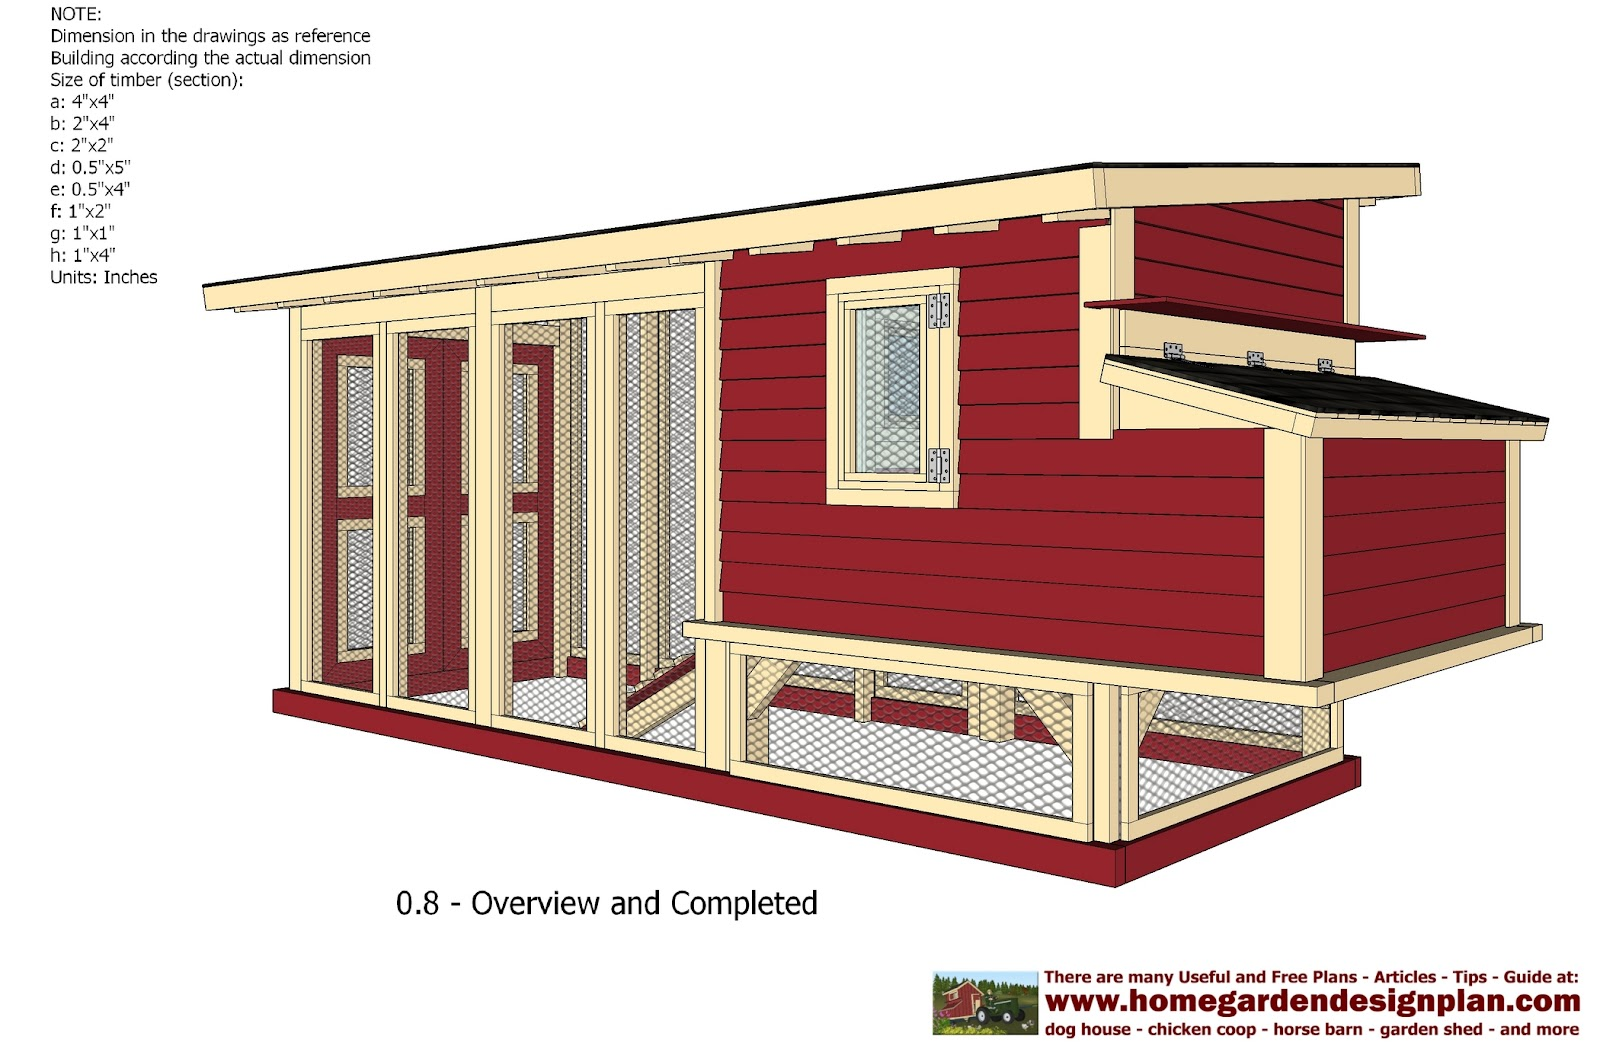 Chicken tractor plans for 10 chickens info coop and plan for Chicken coop size for 6 chickens